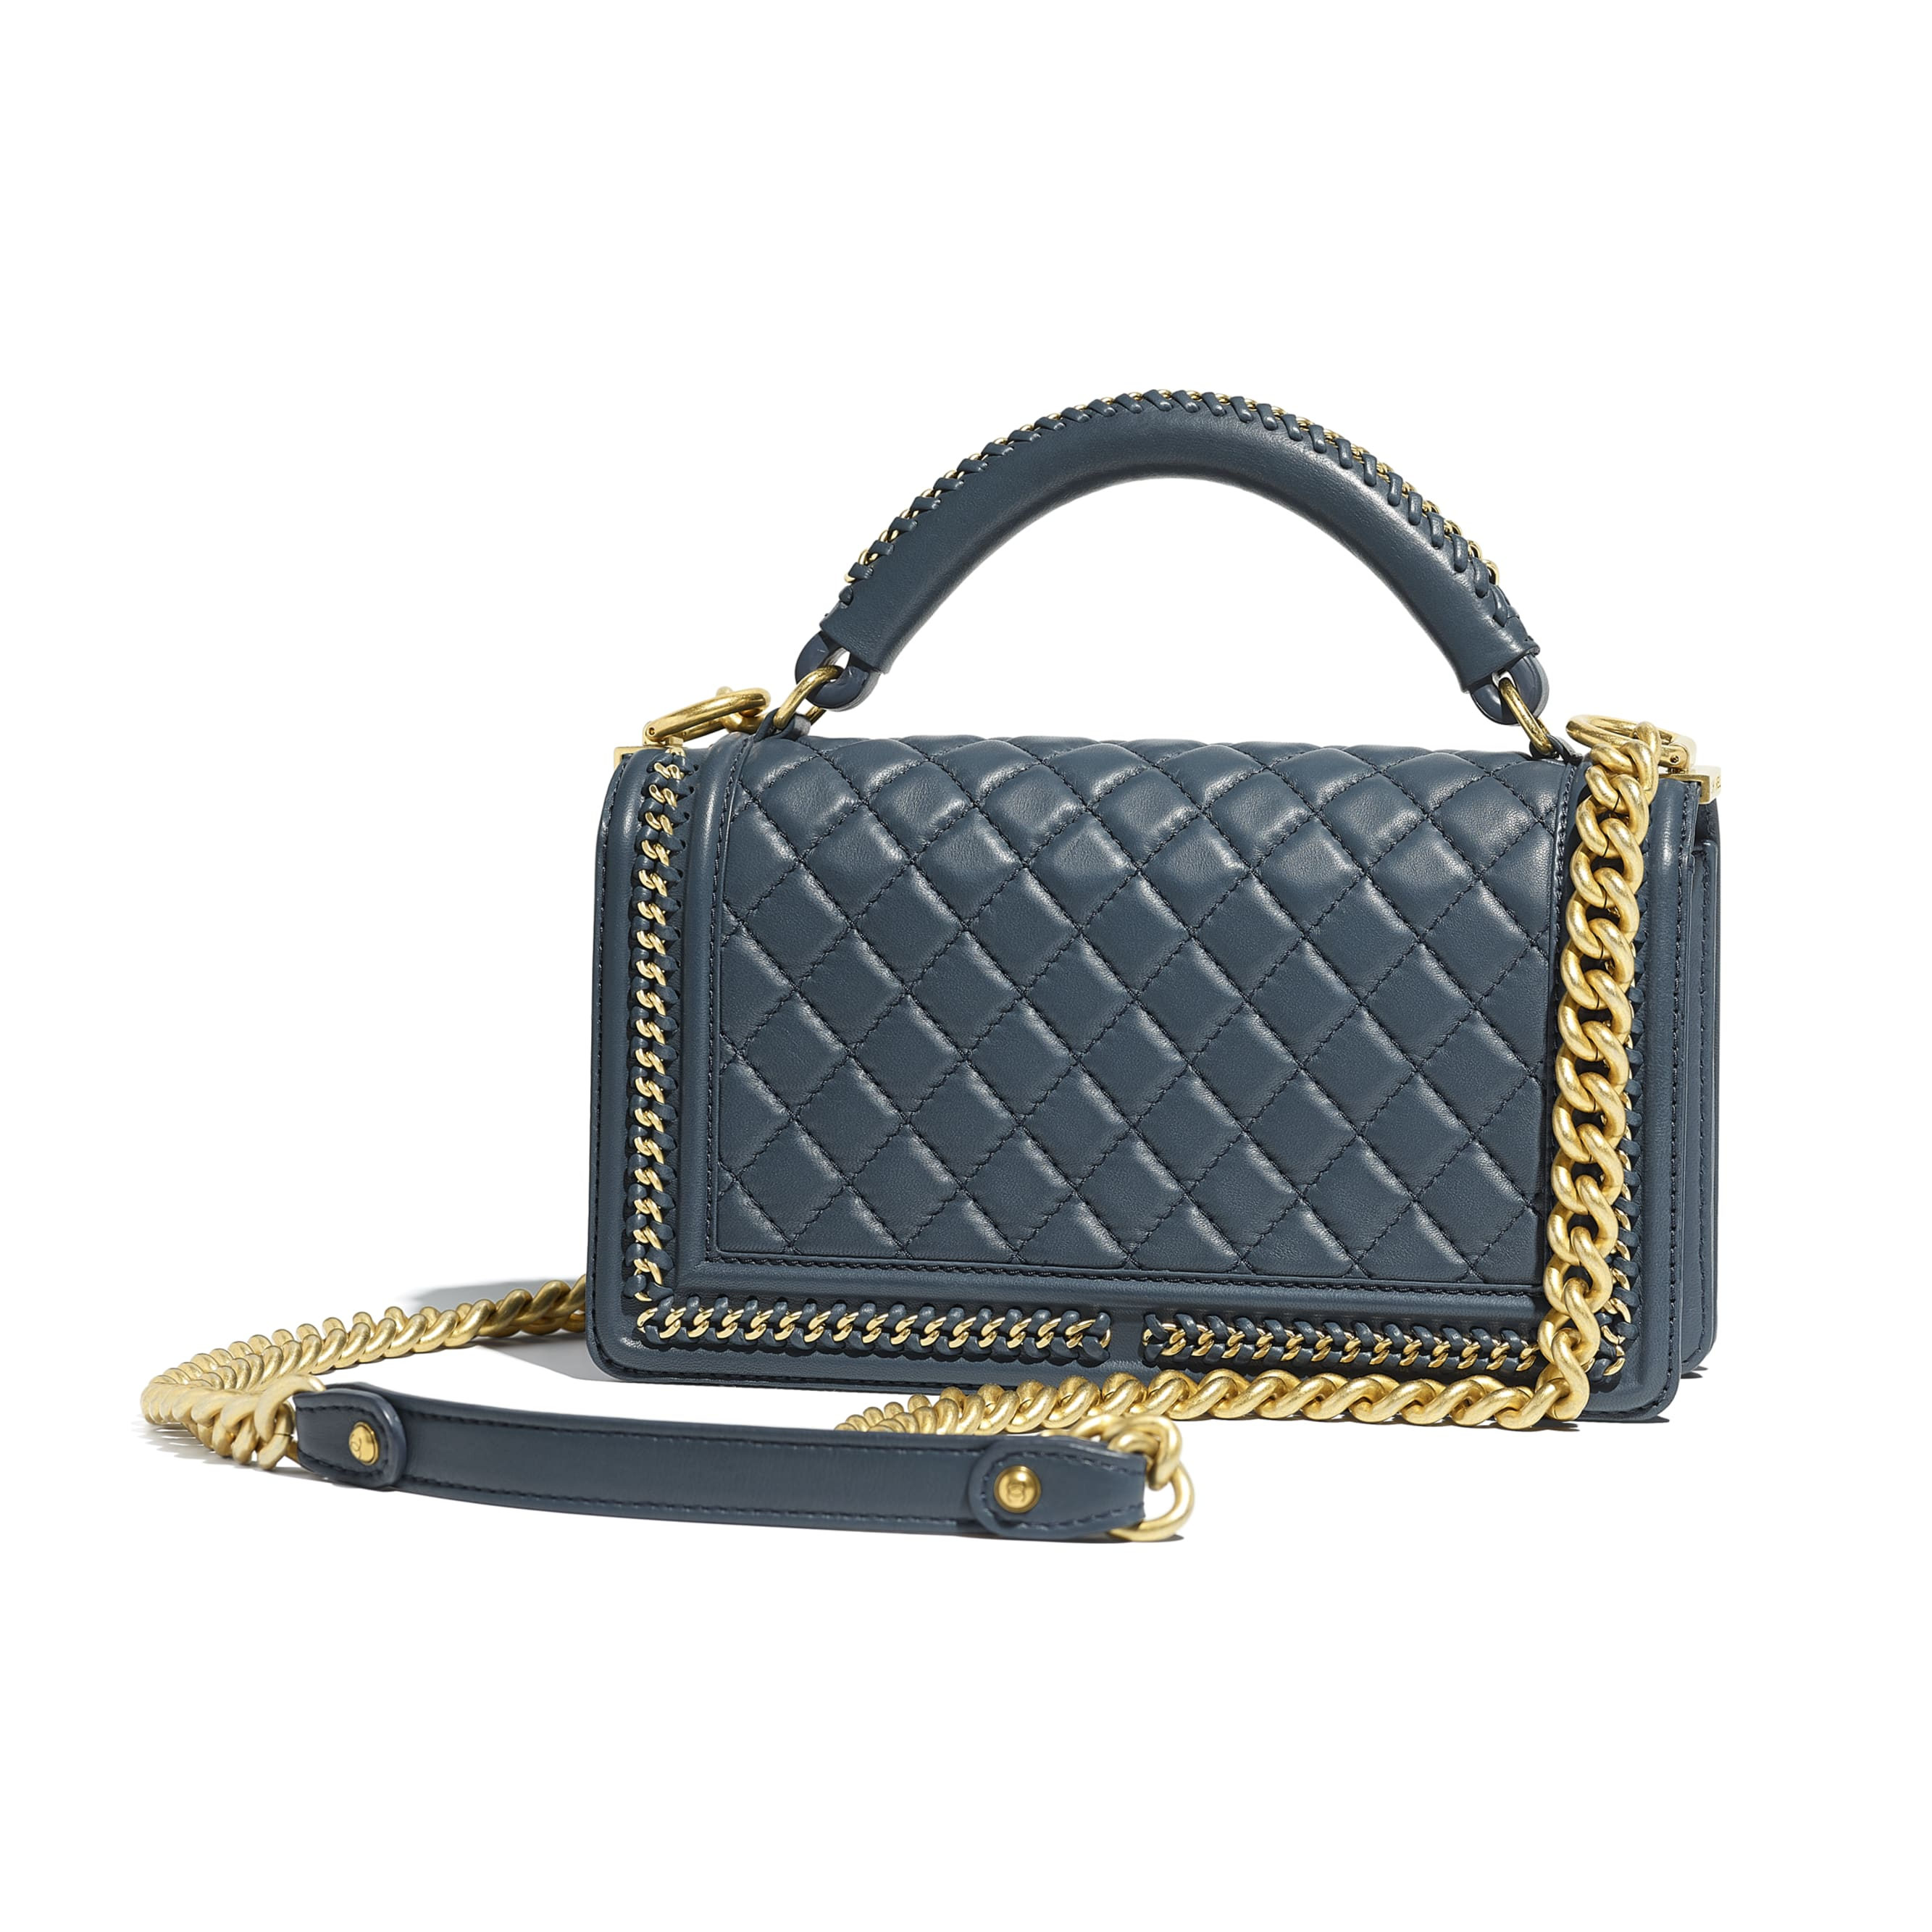 BOY CHANEL Flap Bag with Handle - Blue - Calfskin & Gold-Tone Metal - Alternative view - see standard sized version